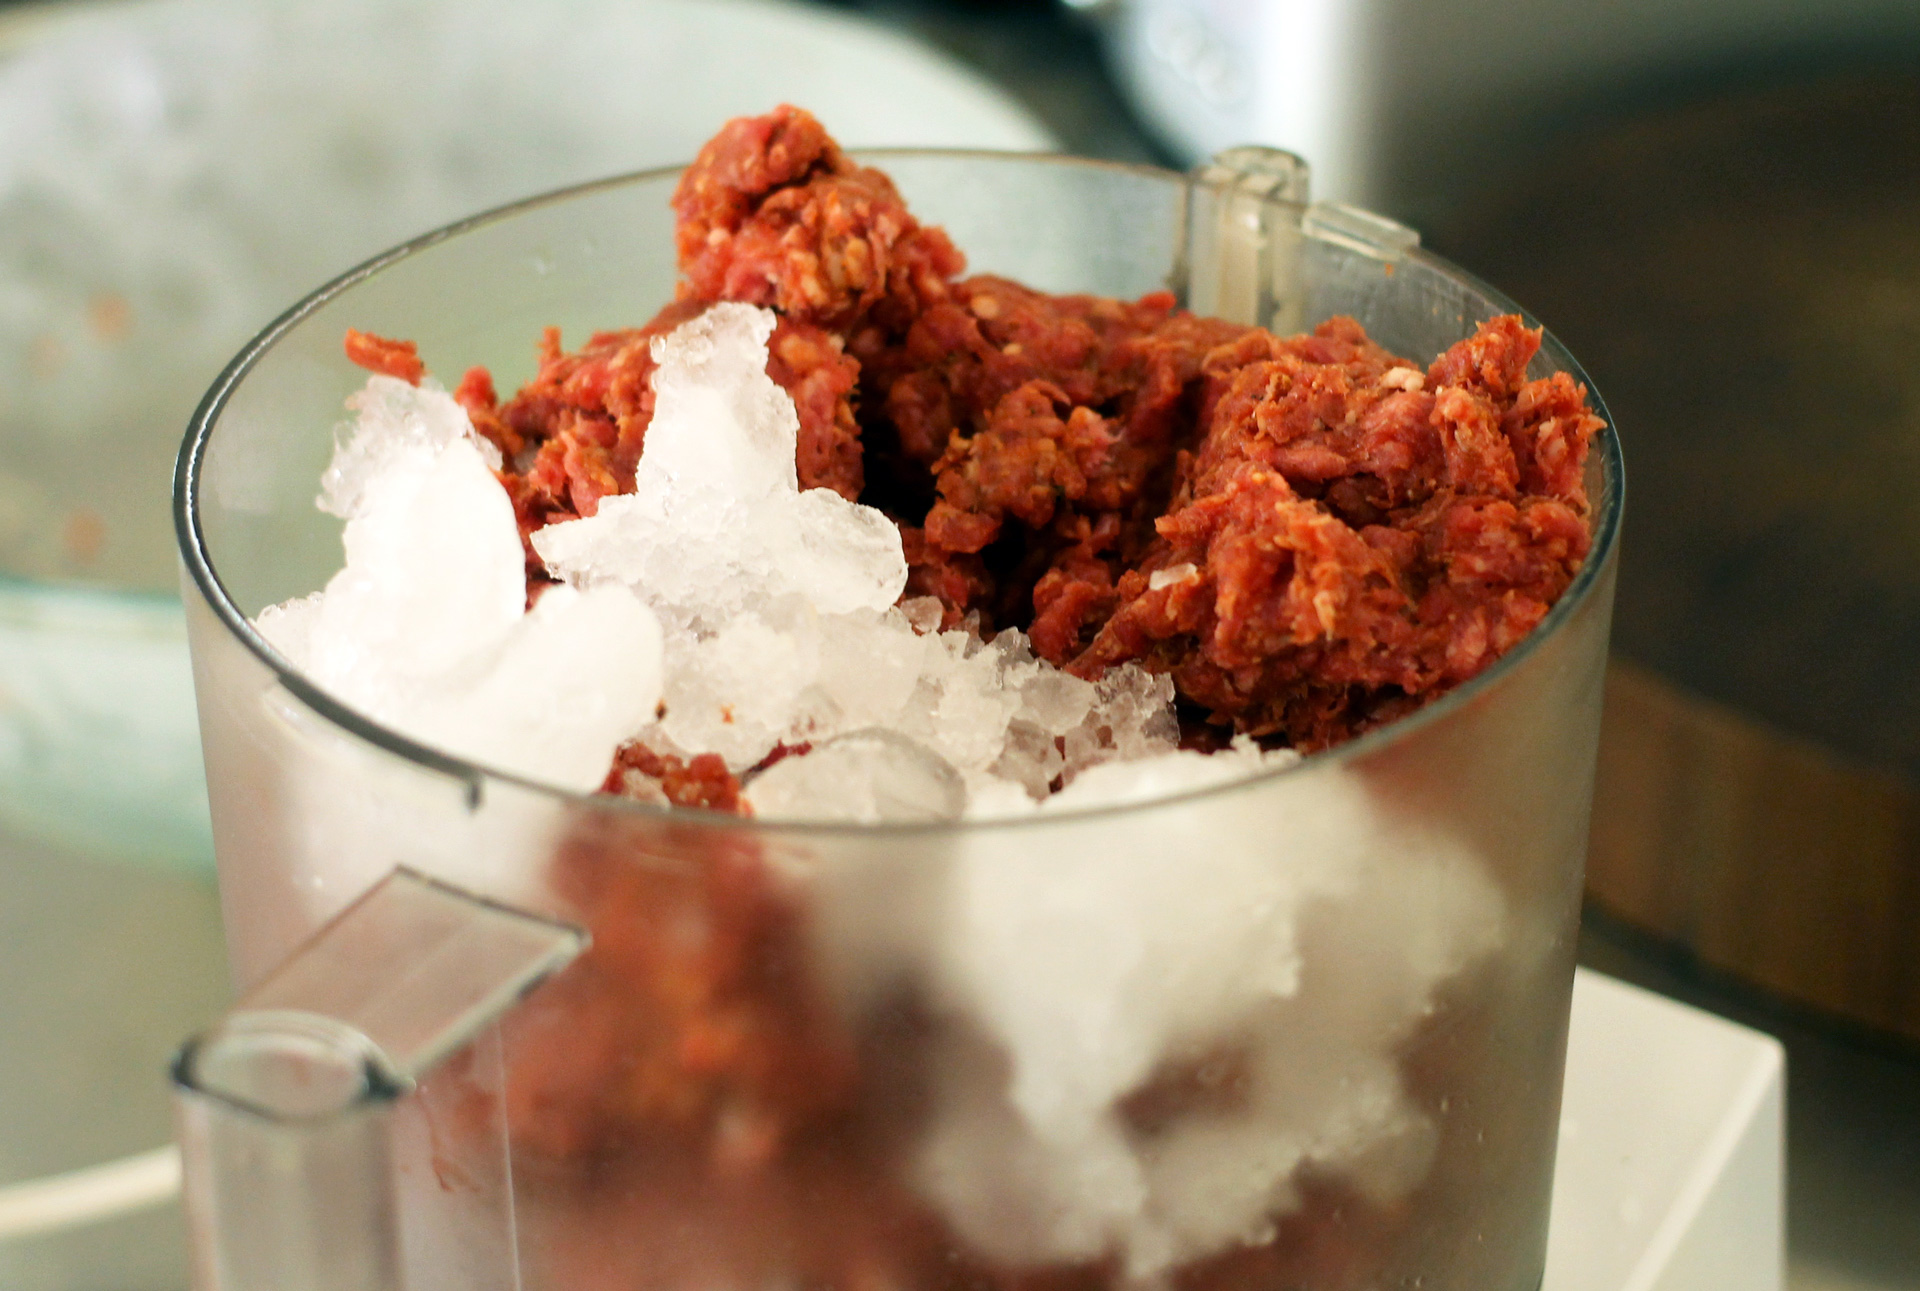 This amount of meat and ice will overflow out of a standard-sized food processor and make a giant mess.